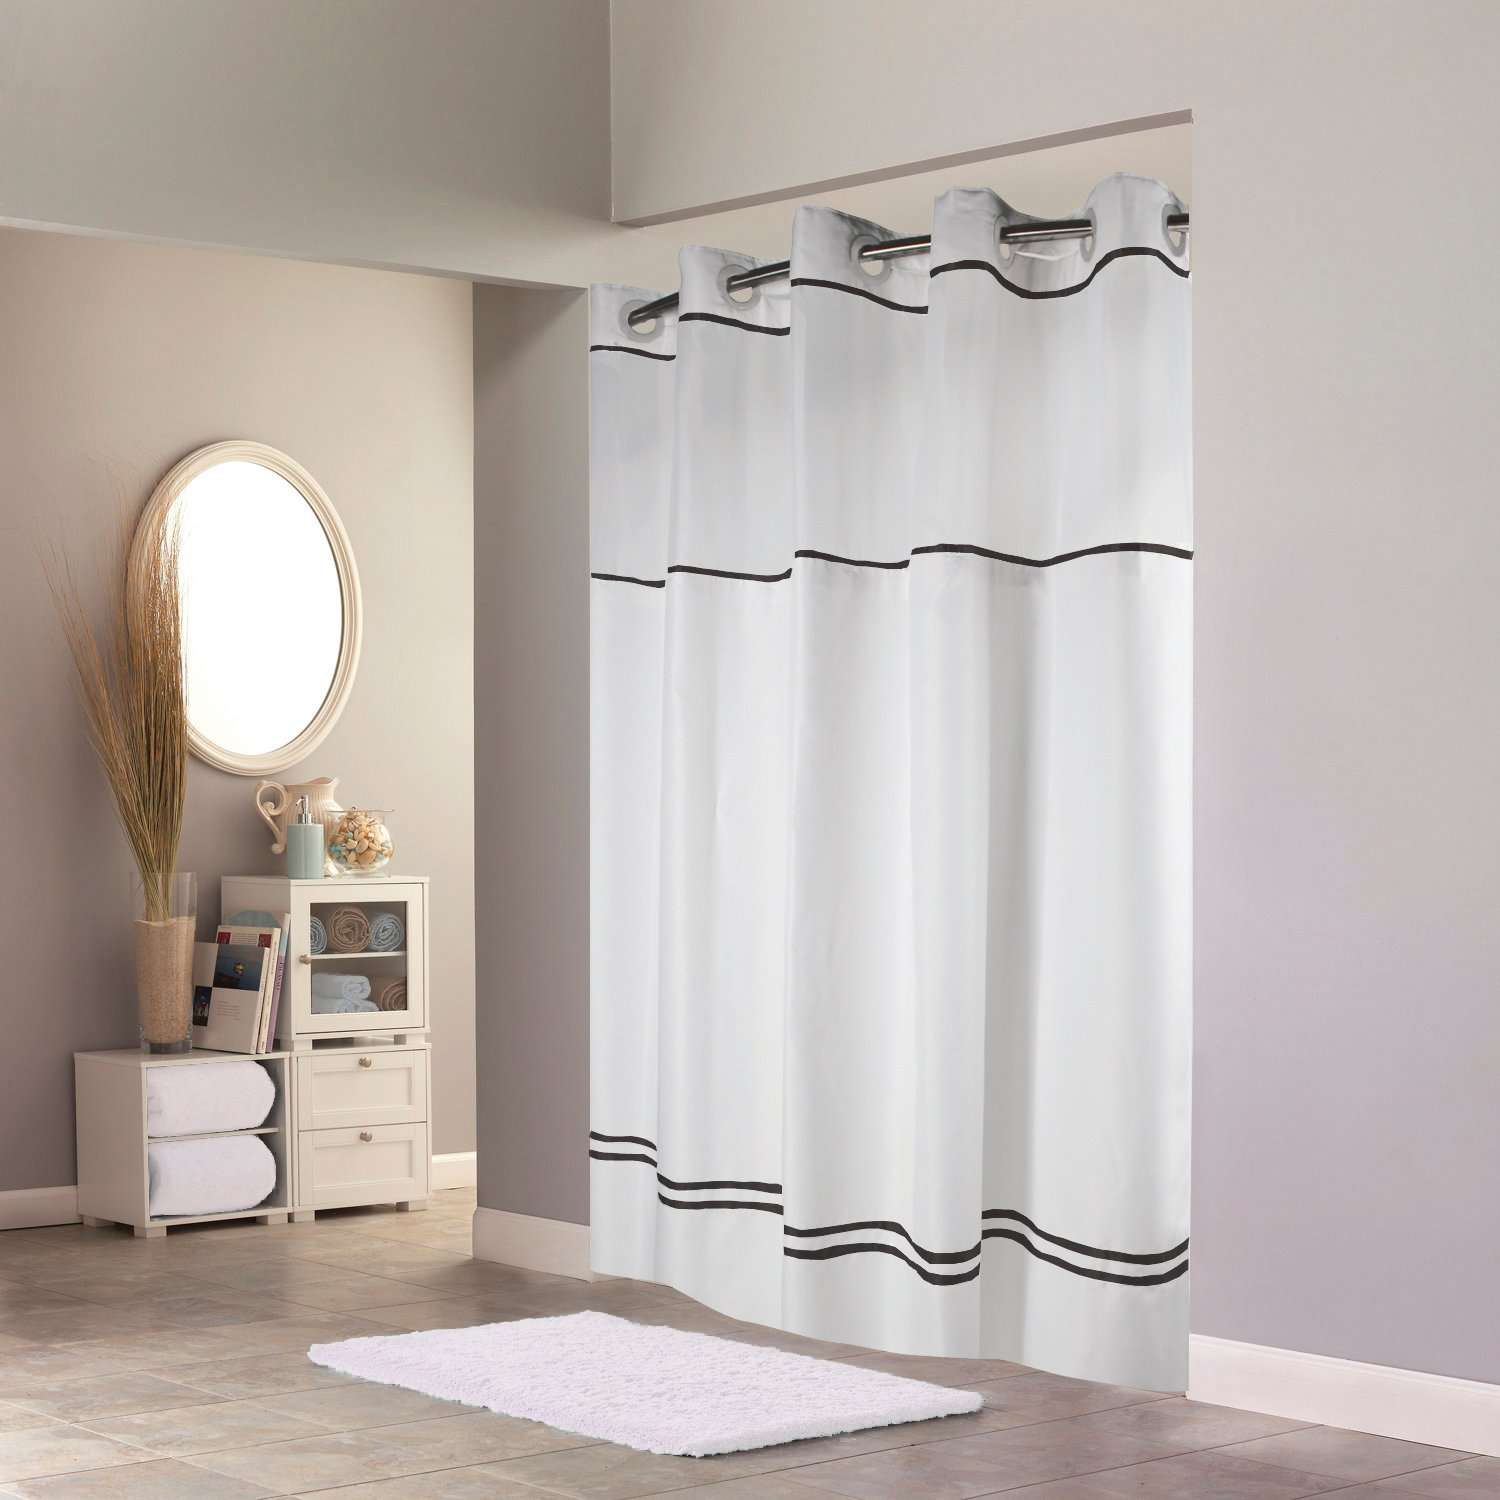 Hookless RBH40MY040 Monterey Shower Curtain with PEVA liner - White/Black